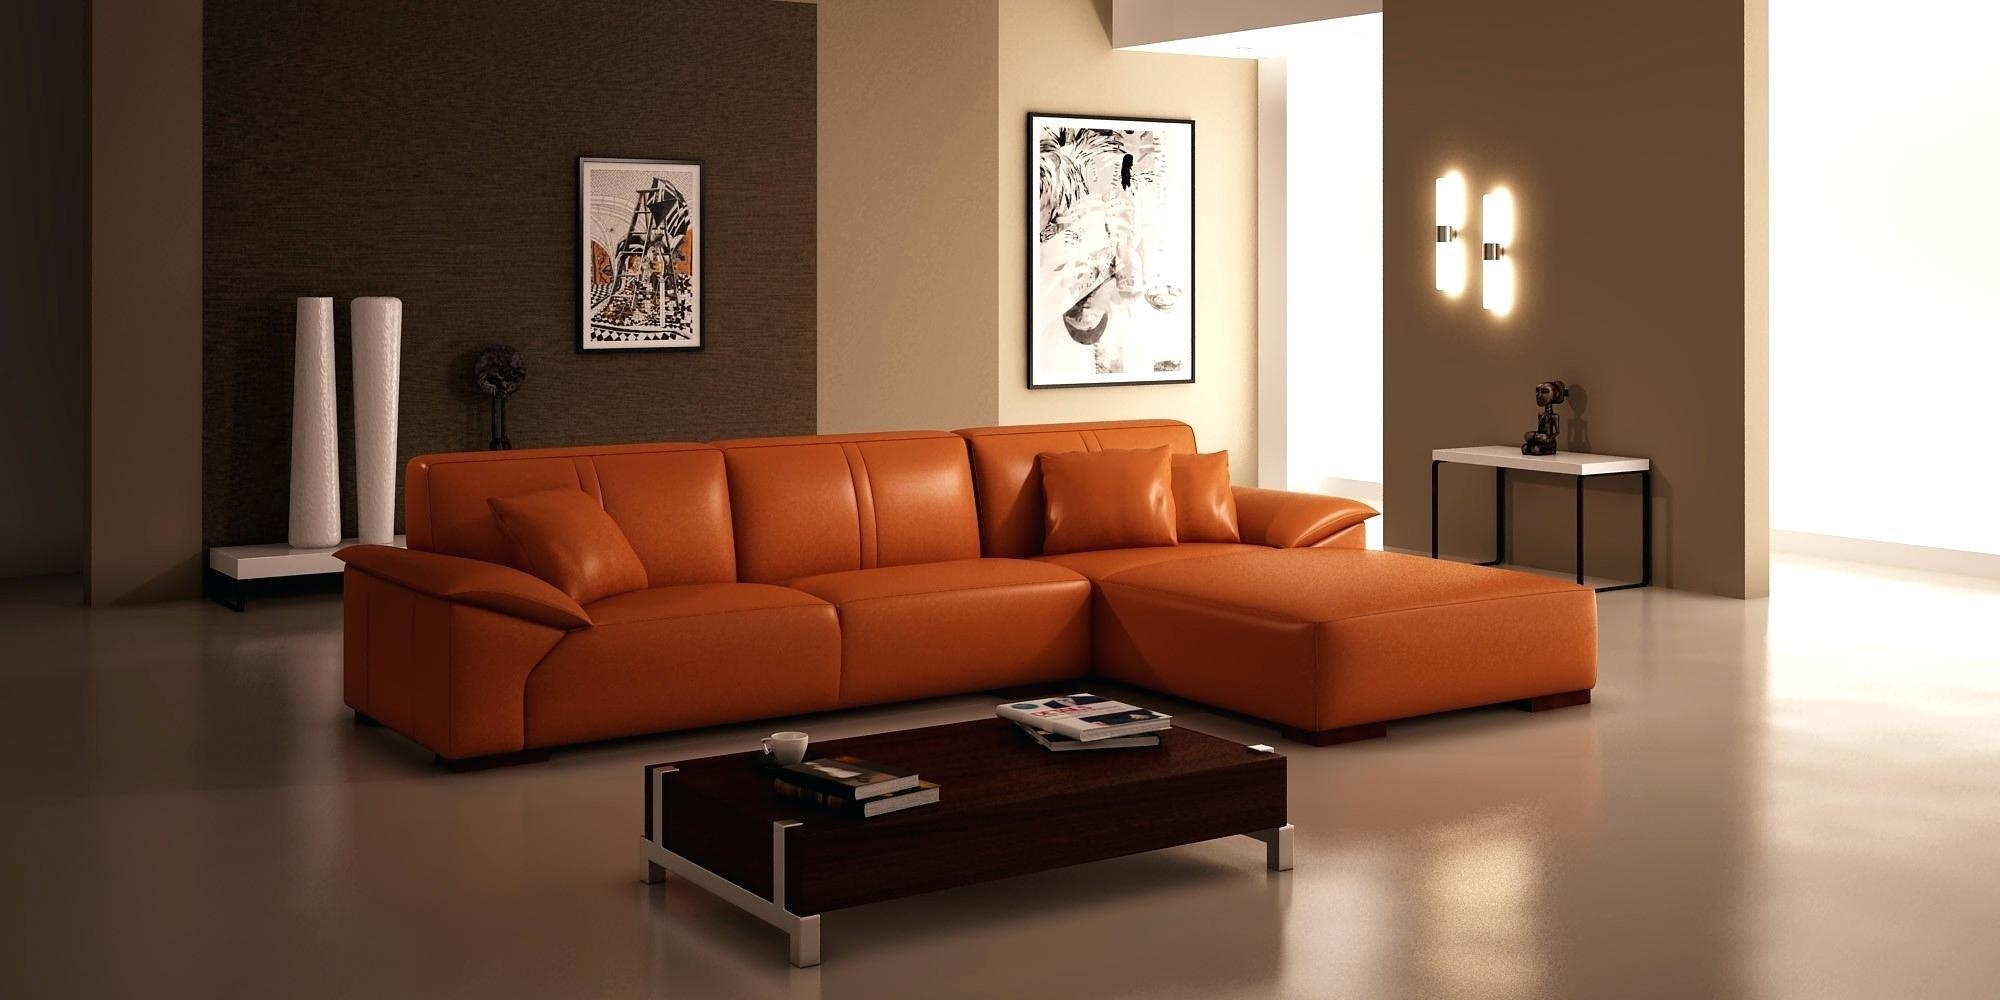 Sofas Center : Zed Orange Leather Sofa Burnt Sleeper Contemporary With Regard To Burnt Orange Leather Sofas (Image 20 of 20)